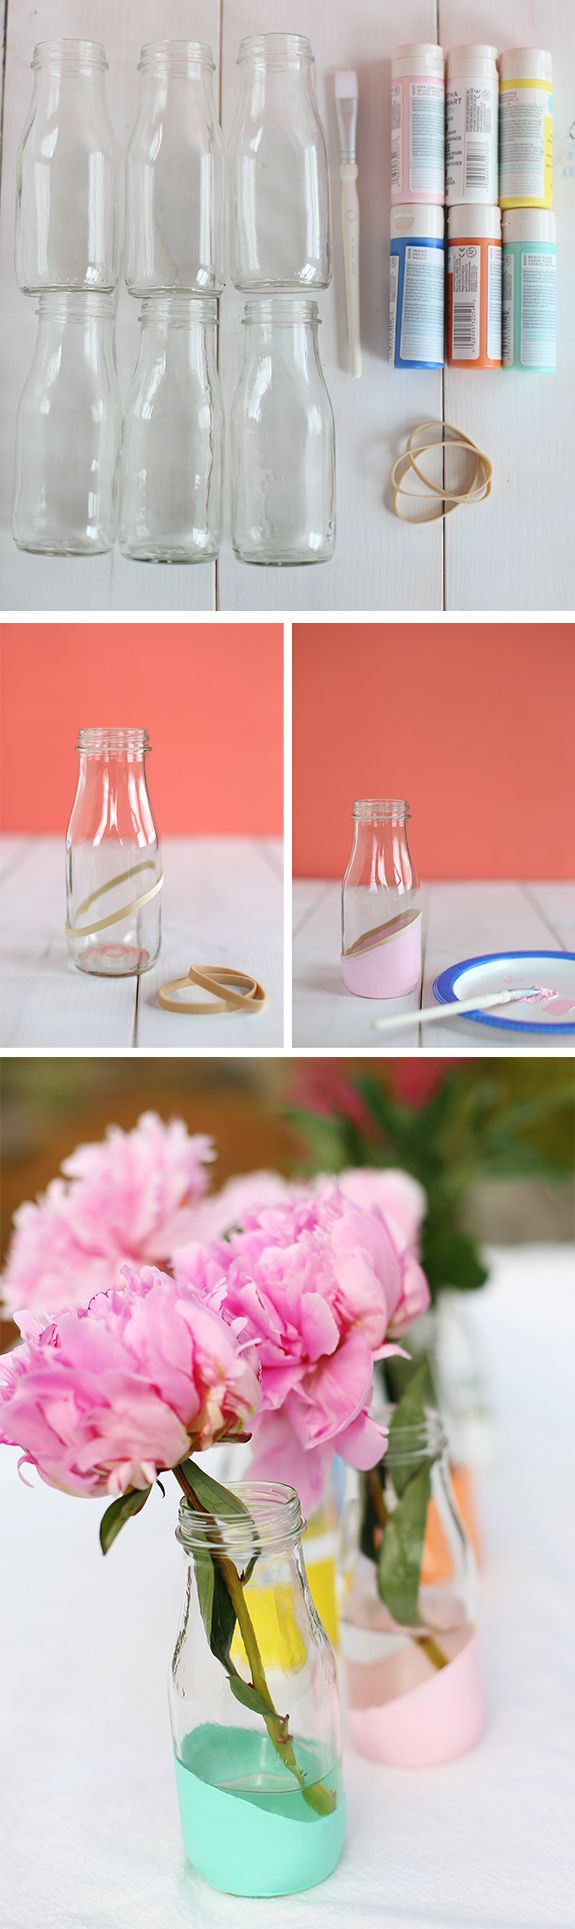 DIY: pastel dipped milk/frap bottle vases